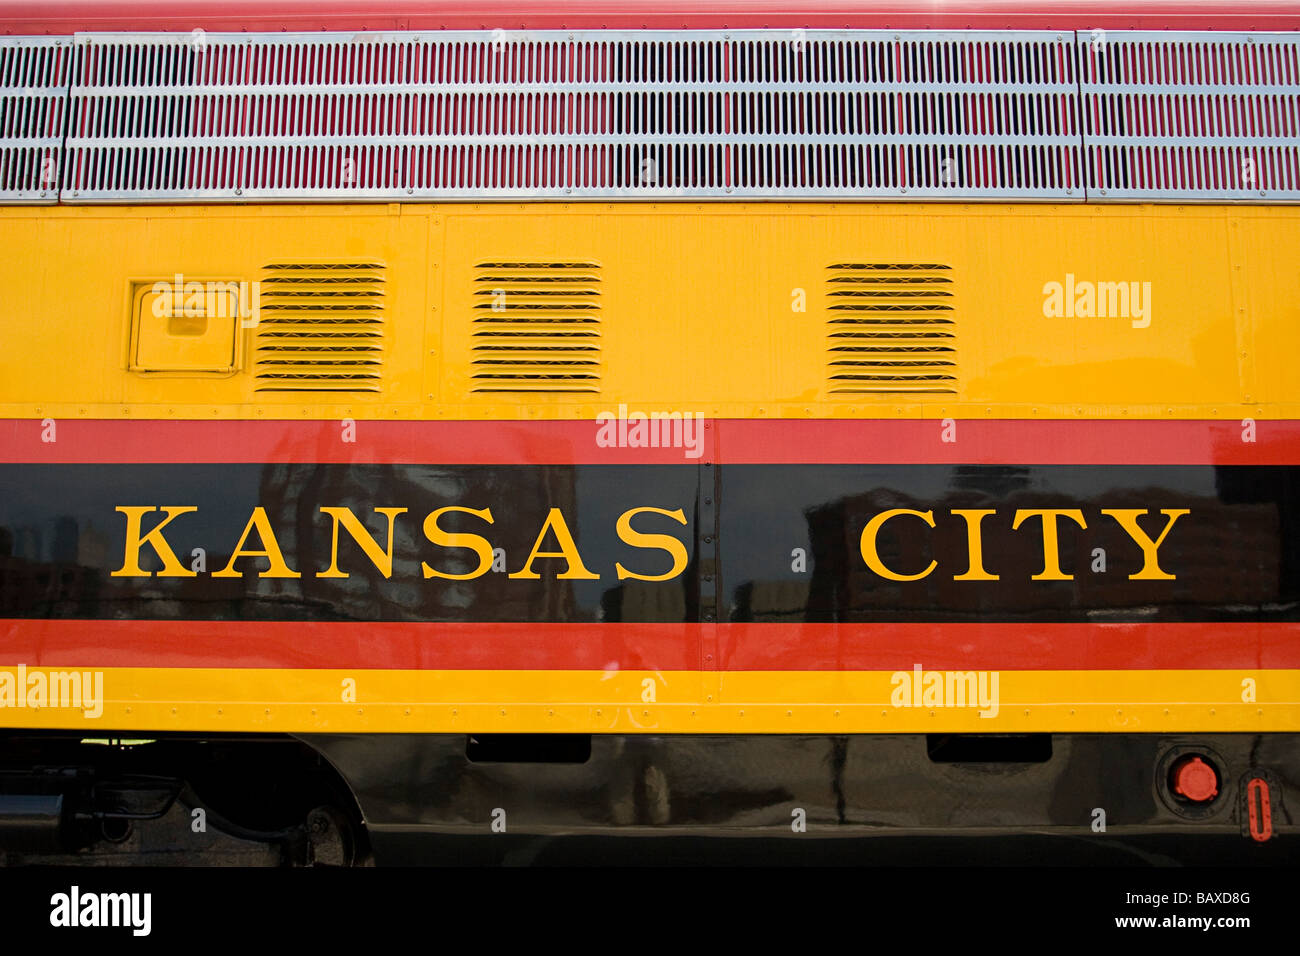 Kansas City, Missouri, USA; Side of locomotive engine - Stock Image